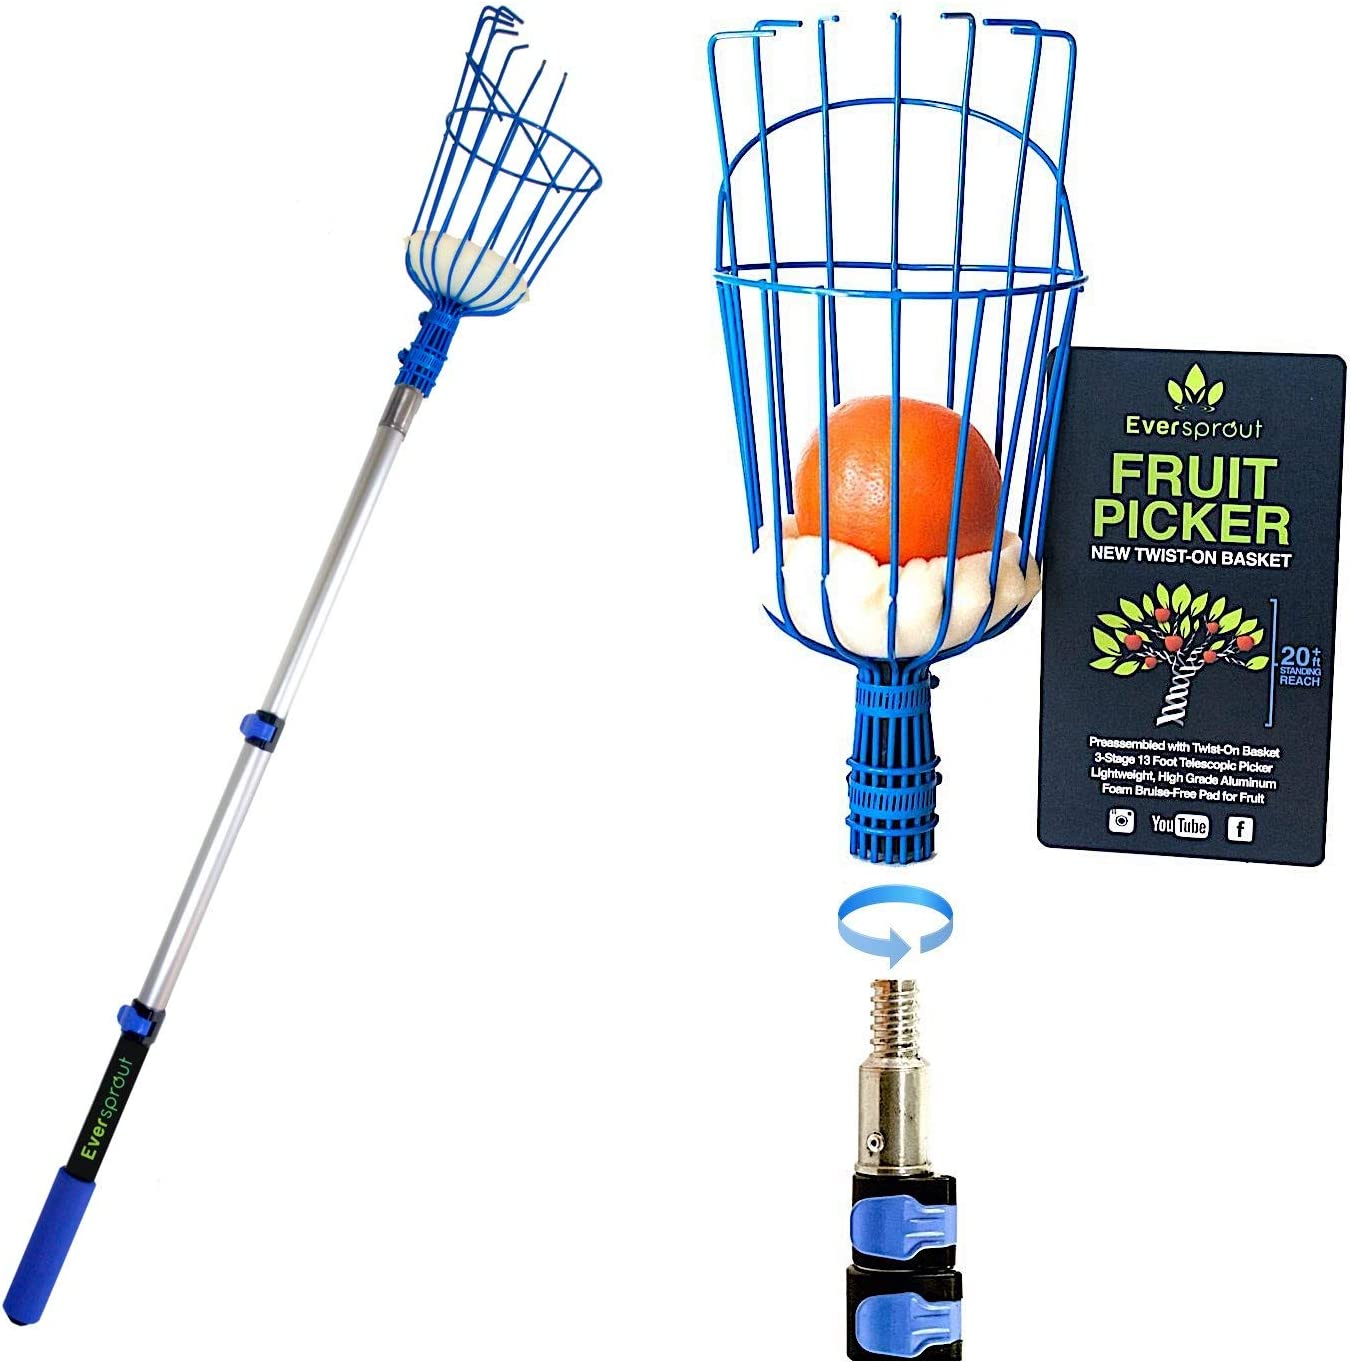 EVERSPROUT 1.5-4.5 Foot Fruit Picker (8-10 Ft Standing Reach)   Preassembled, Easy to Attach Twist-On Basket   Lightweight, High-Grade Aluminum Extension Pole   +Bonus Fruit Carrying Bag